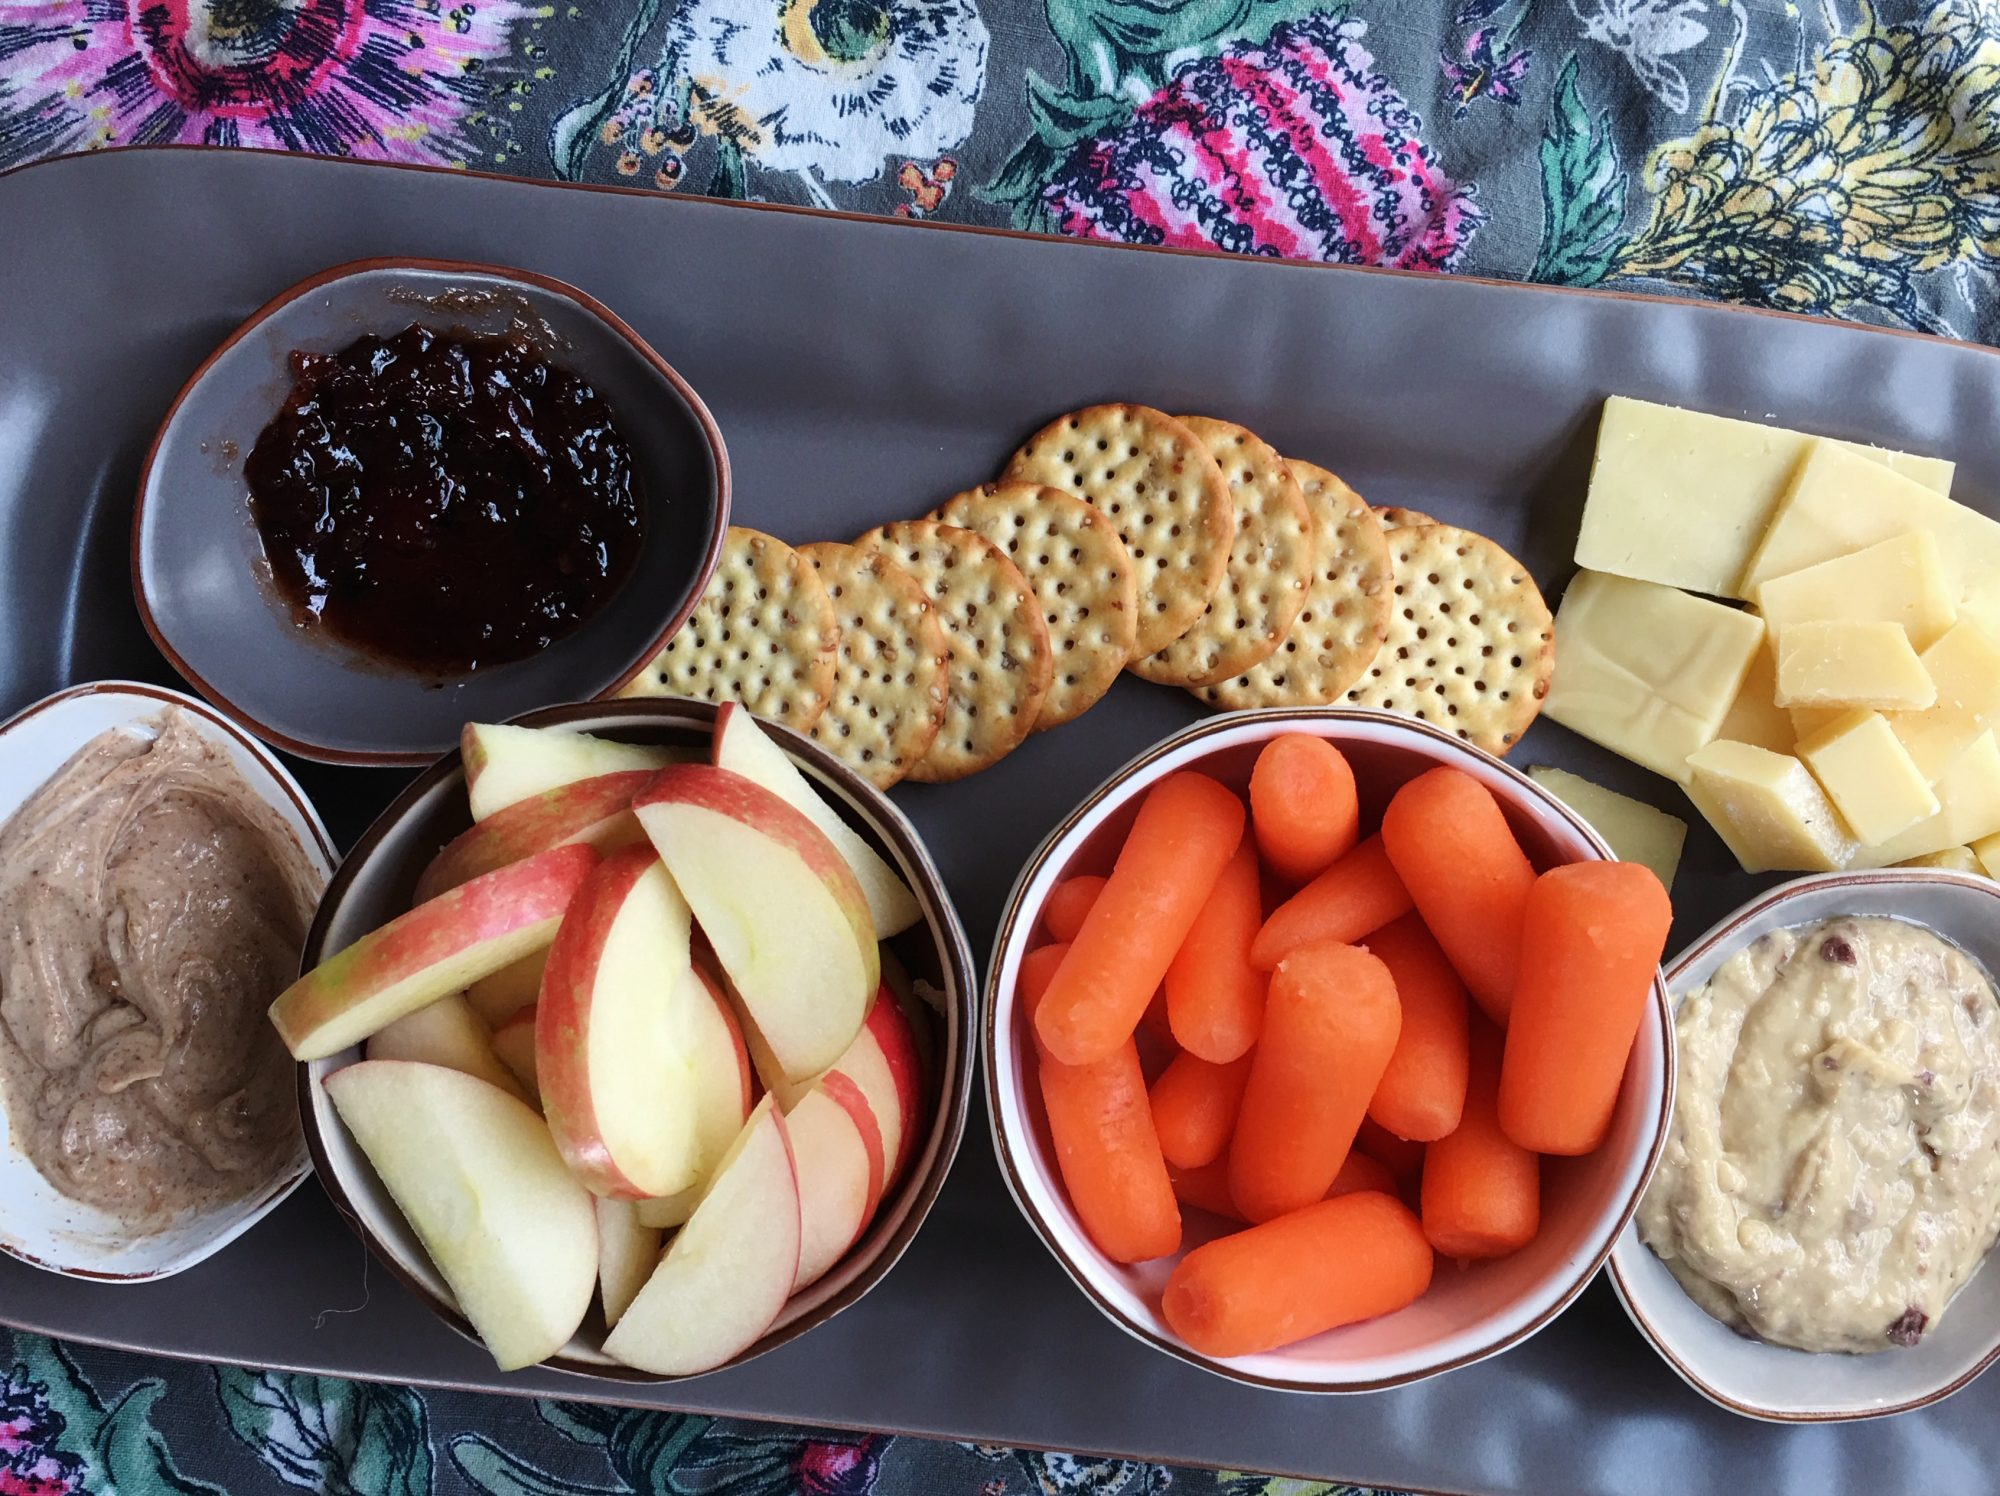 snack dinner apples carrots